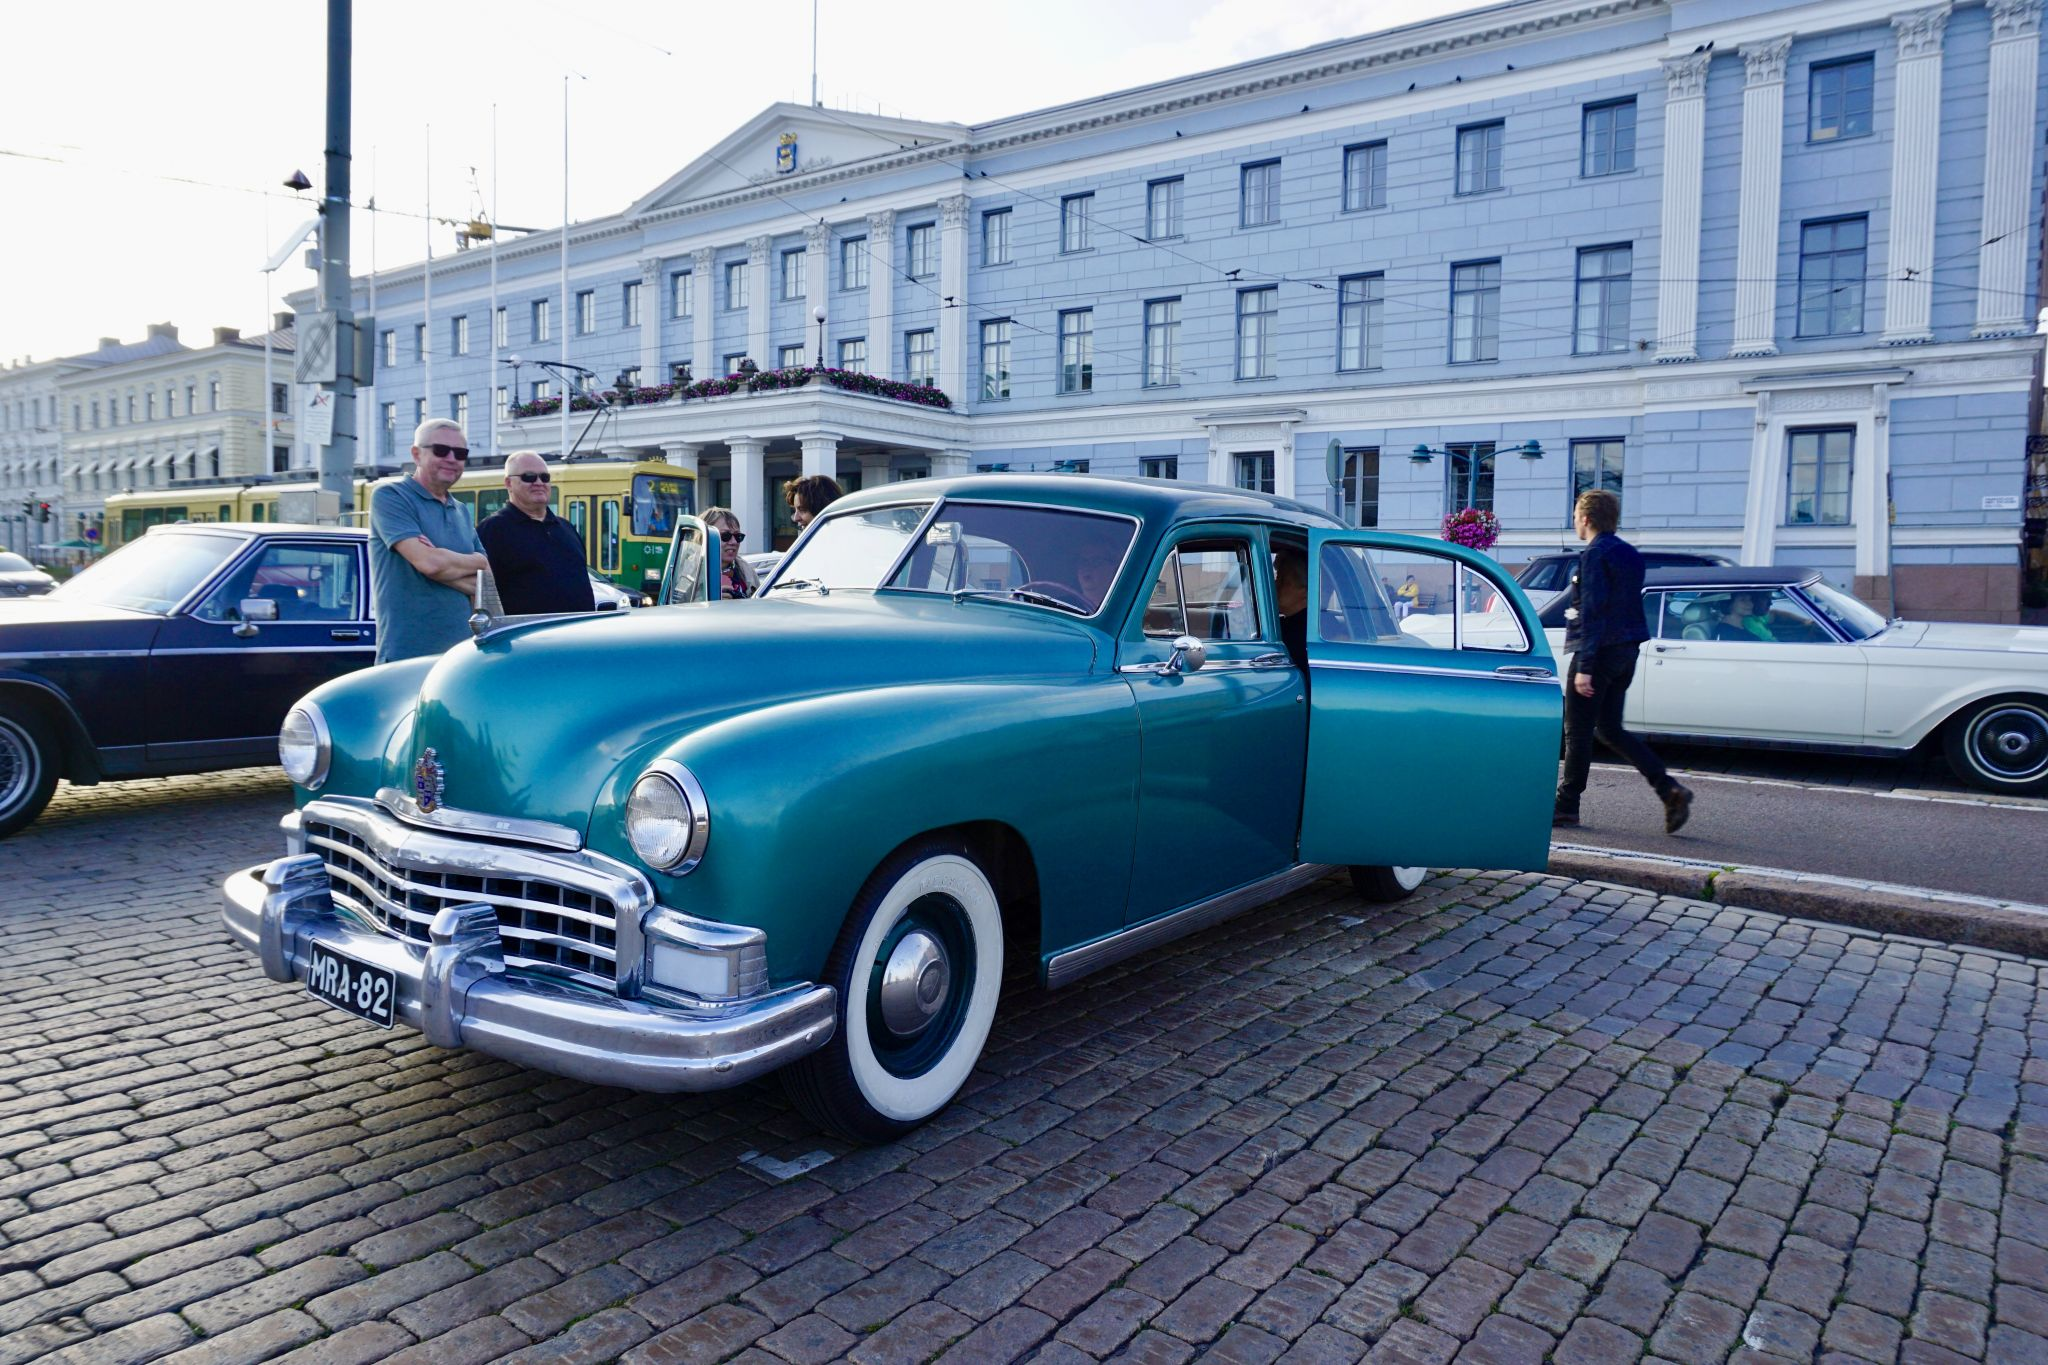 How to see vintage cars in Helsinki